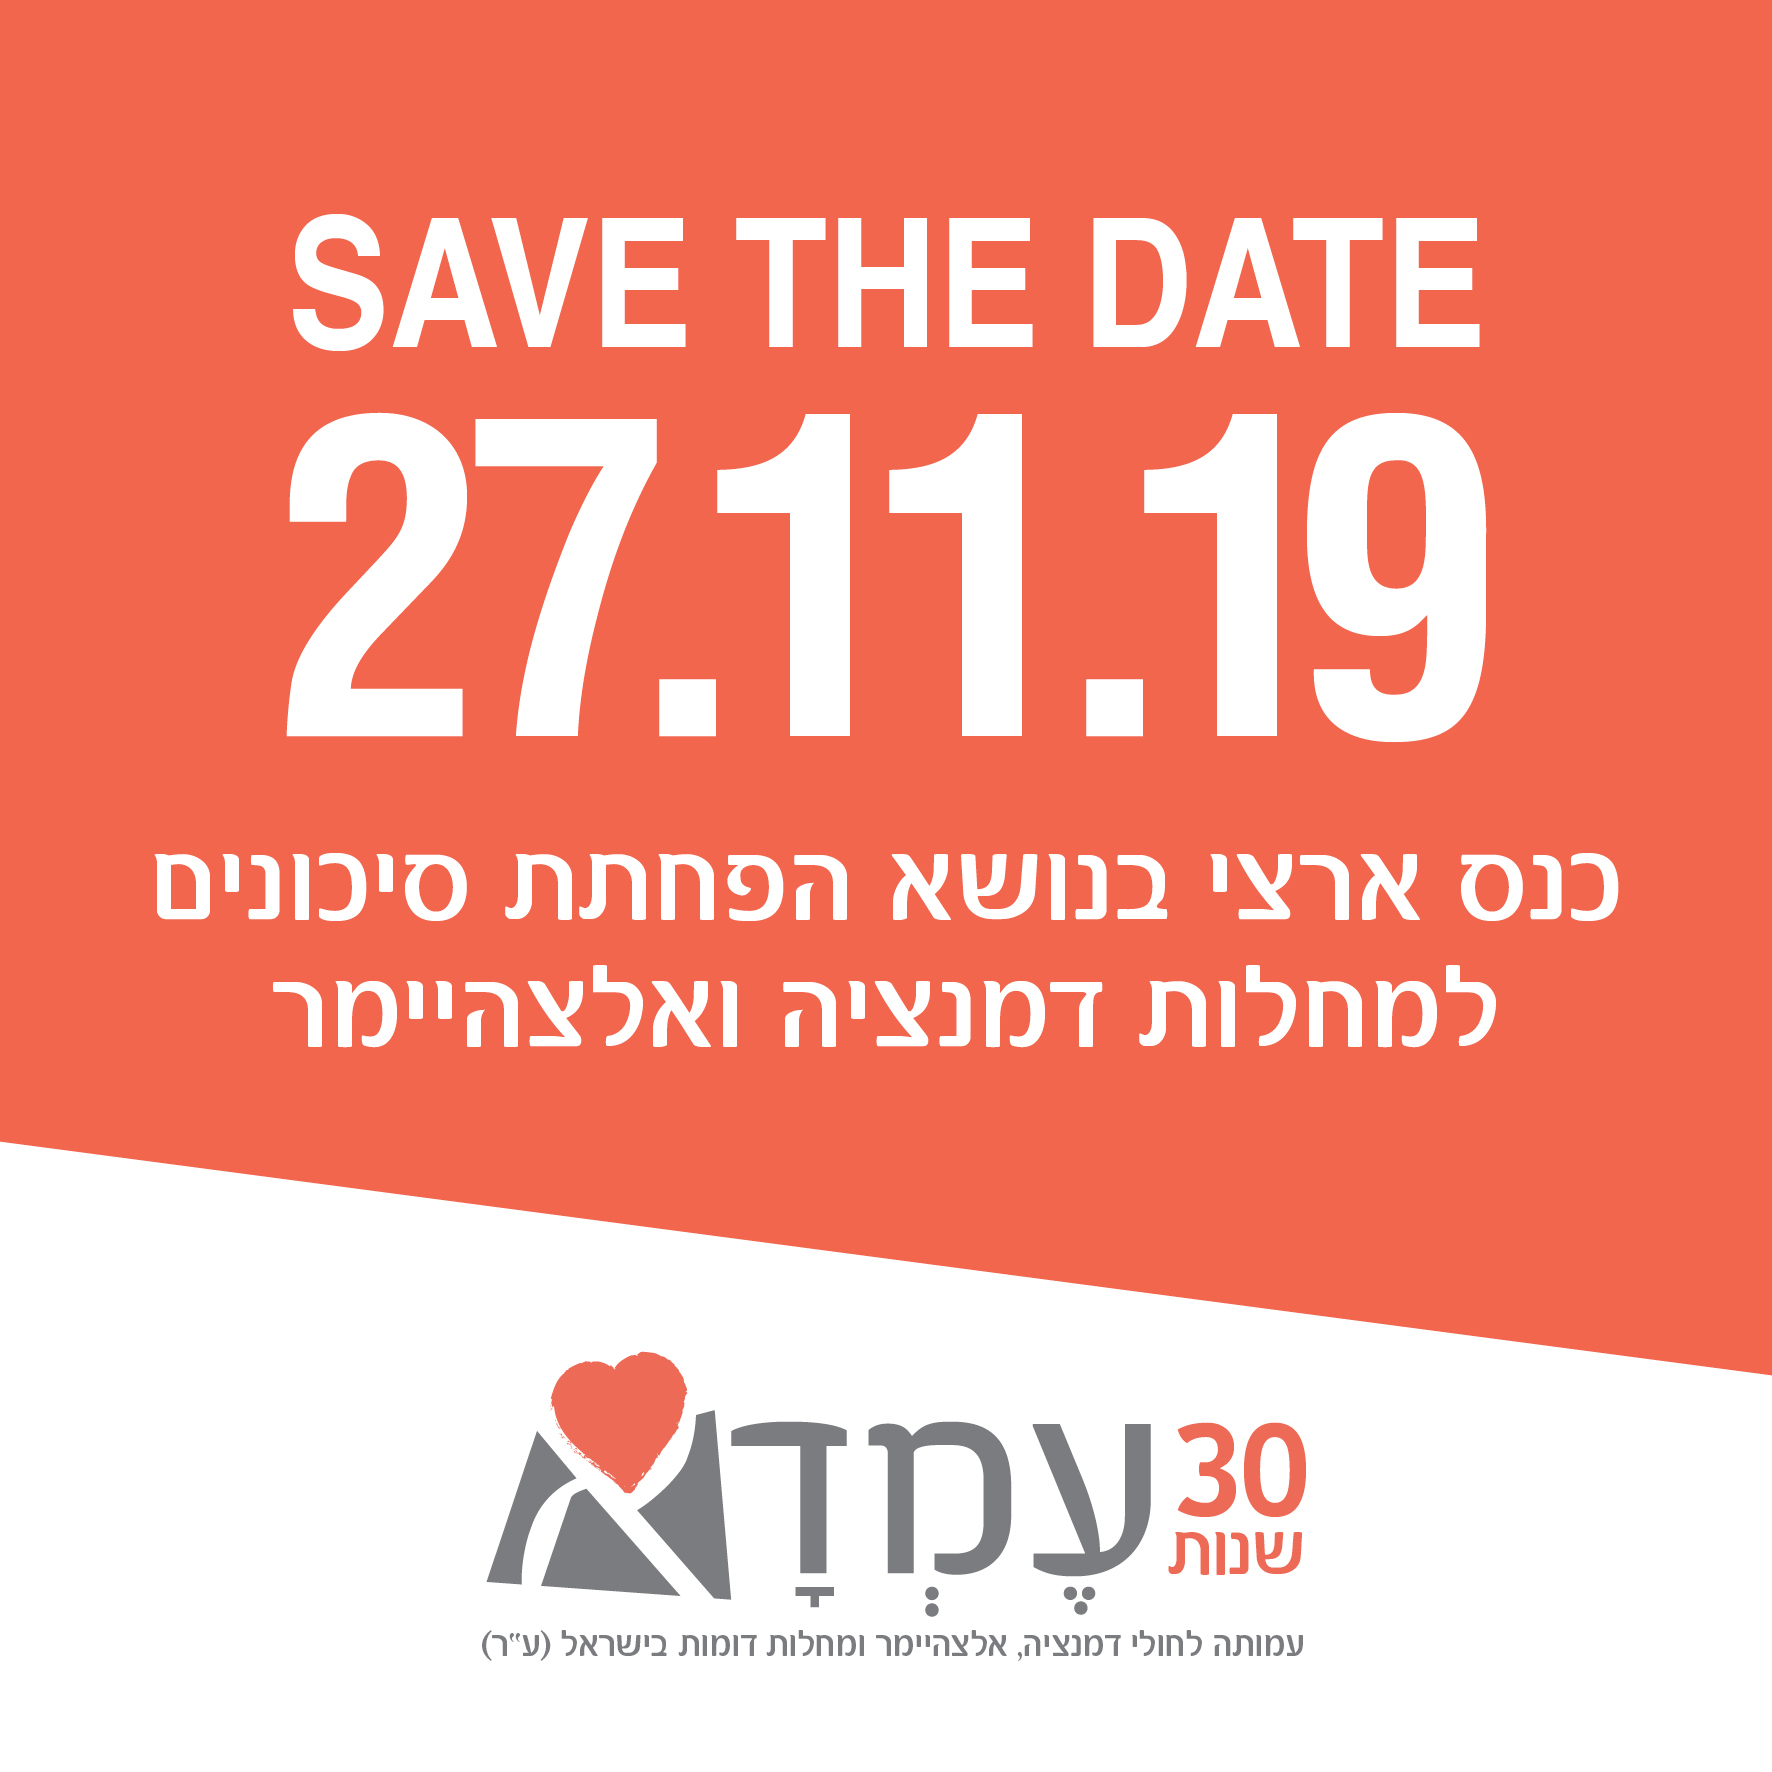 az31-006-19_save the date (3)